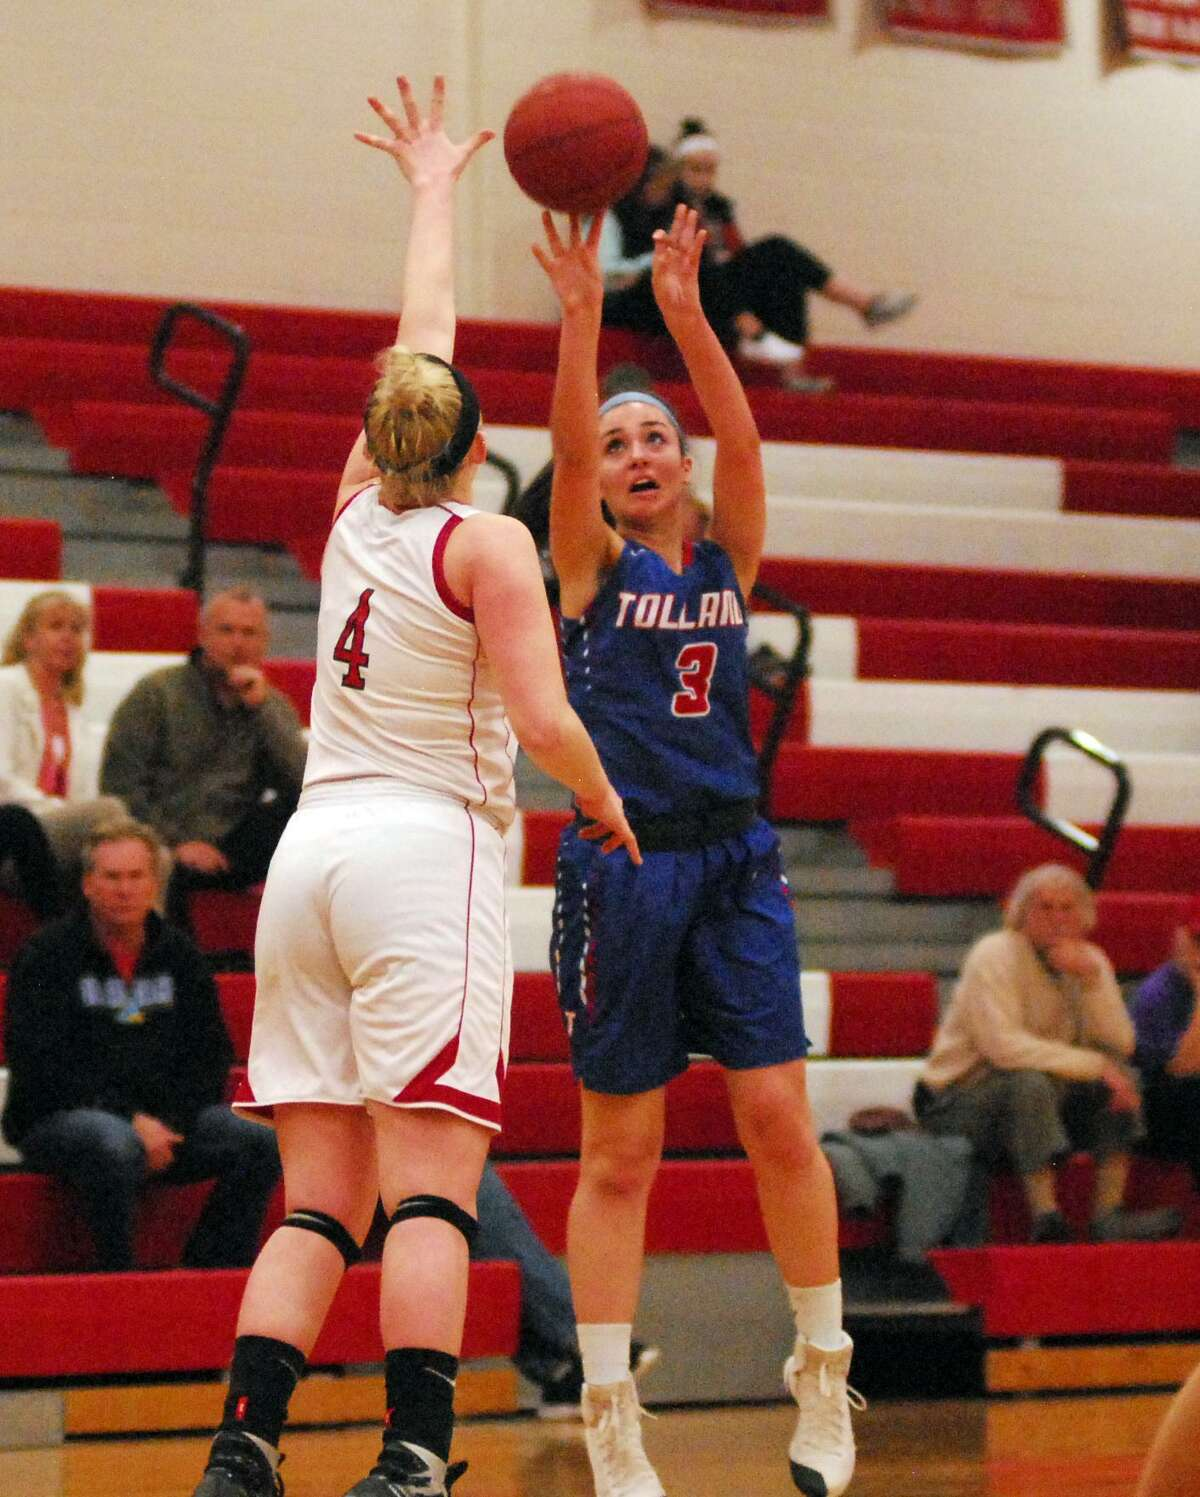 Tolland's Sophia Webster shoots over Pomperaug's Karli Opalka during a Class L first round game Tuesday.